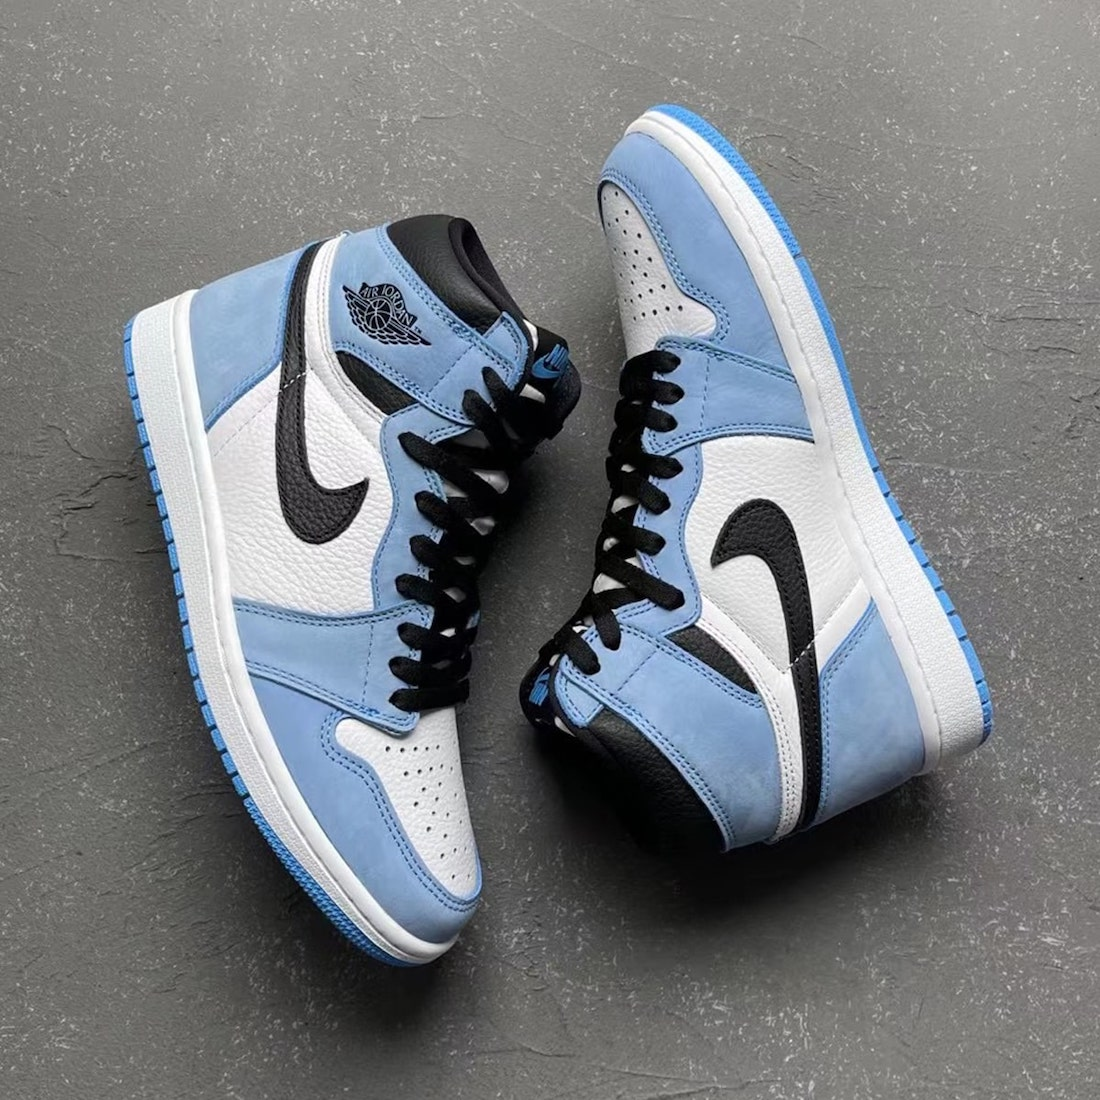 Air Jordan 1 High OG University Blue 555088-134 Release Info